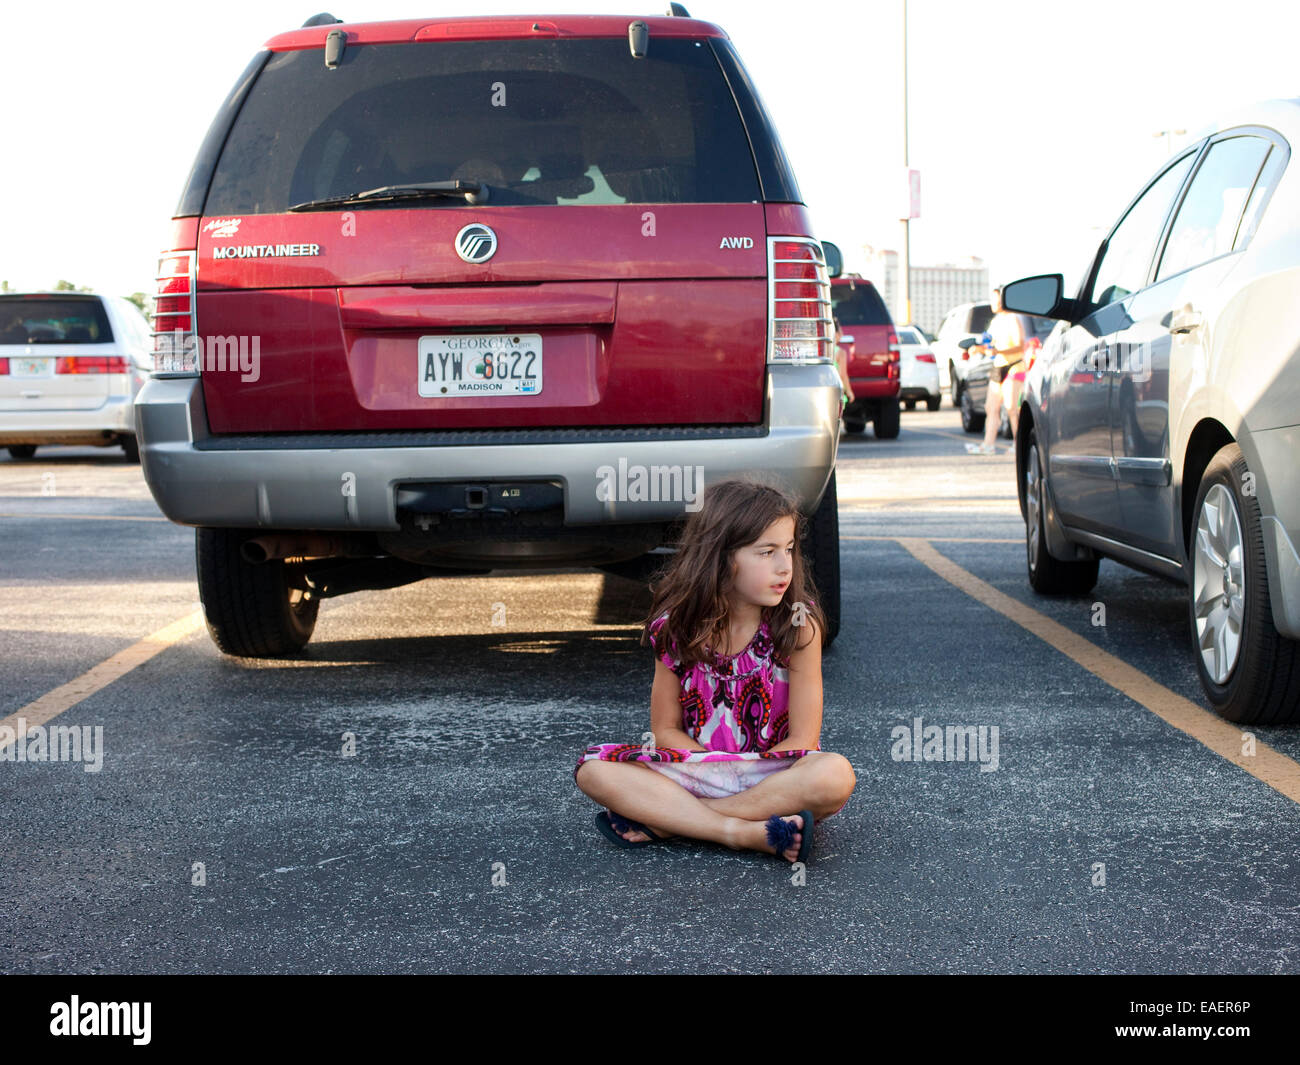 A young girl in a colorful dress sits in a parking lot and waits Stock Photo